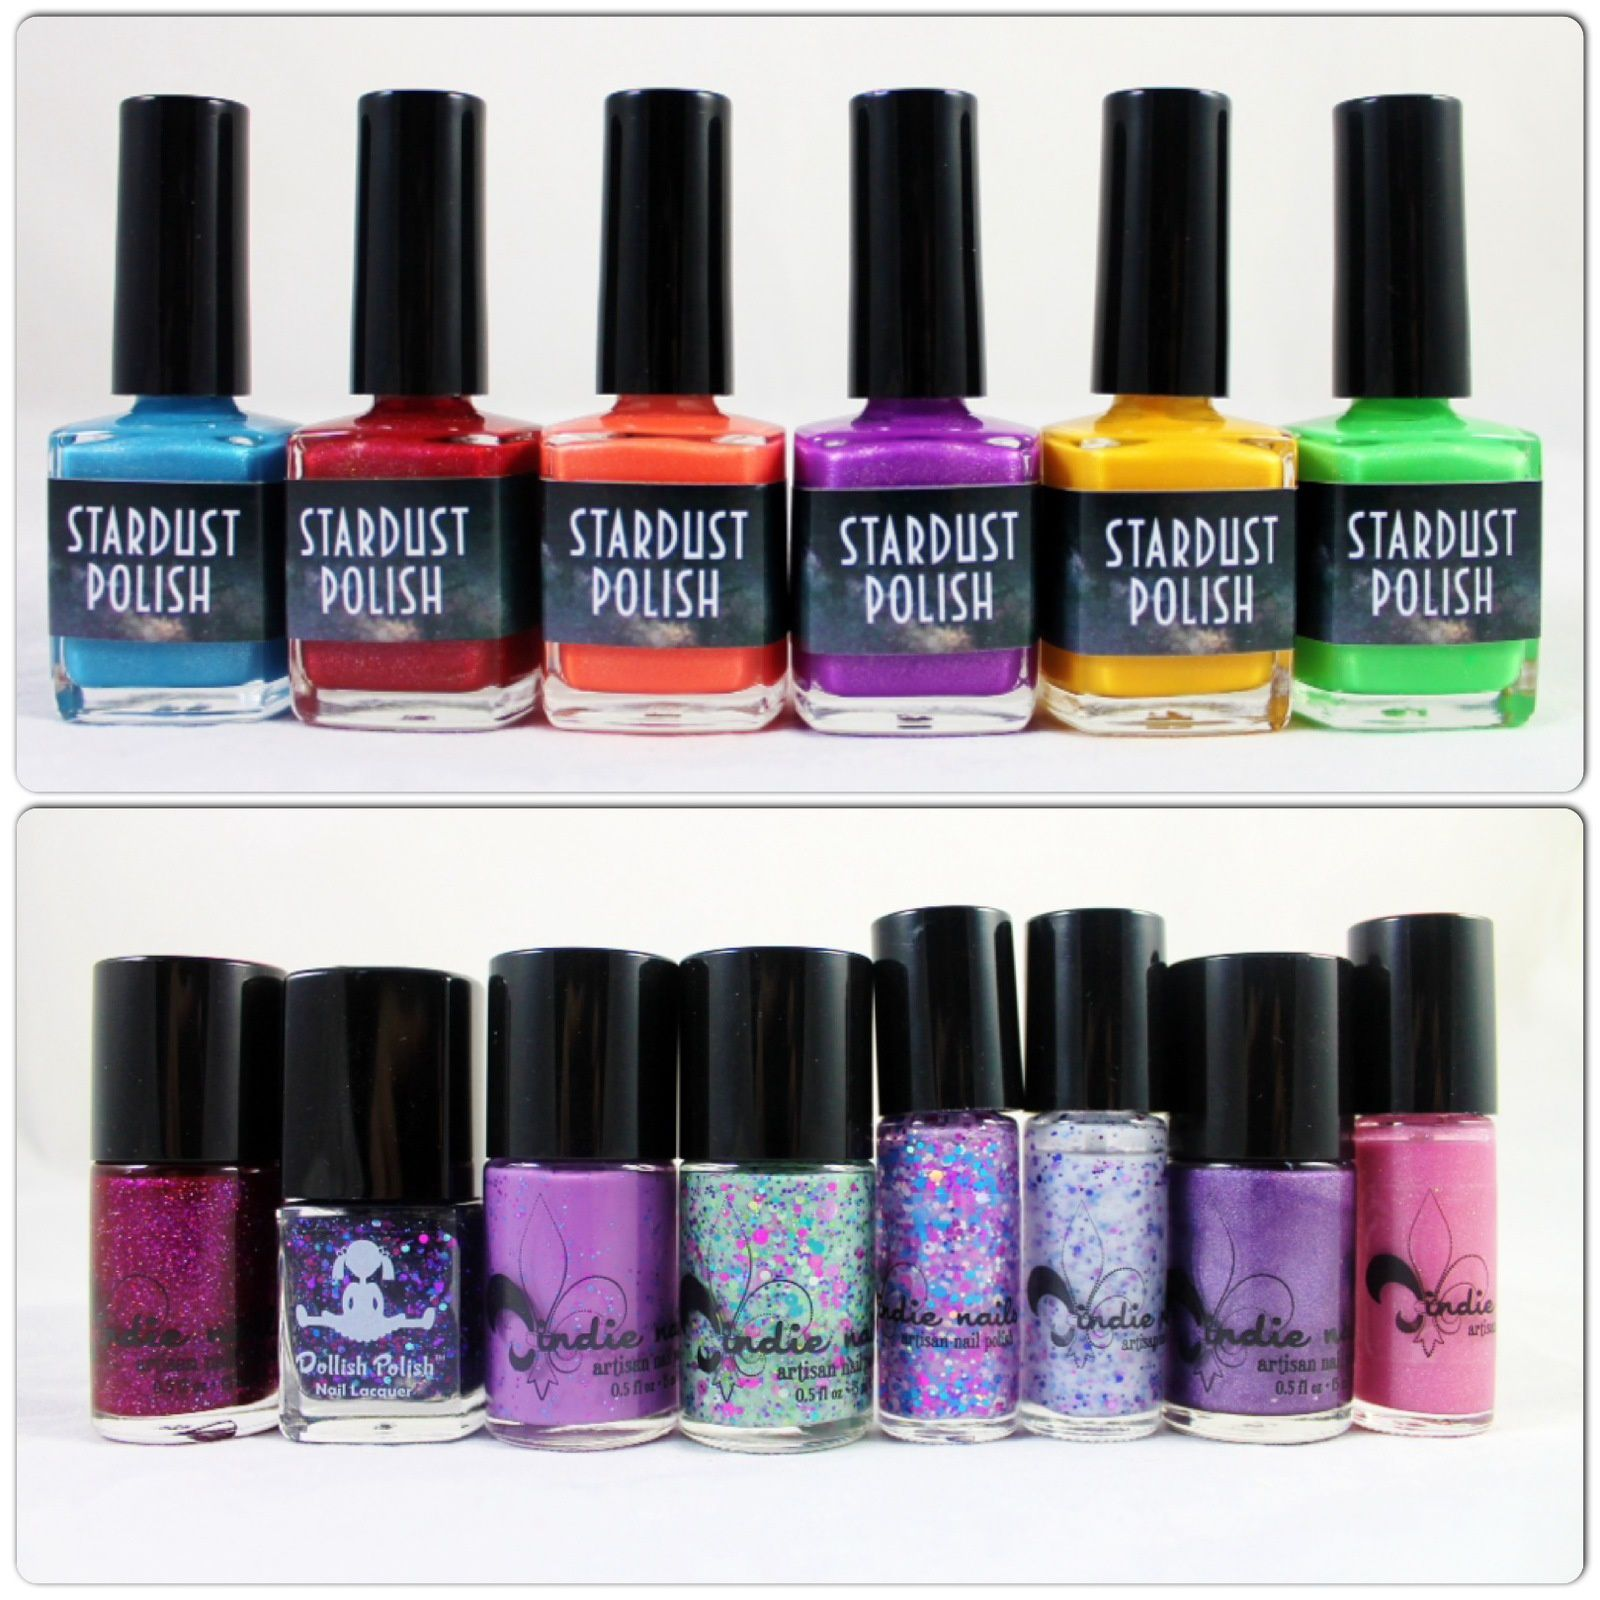 Stardust Polish Cloud 9, Yes Your Majesty, Back to the Beach, Summer Kisses, Sun Drops & Morning Dew. Jindie Nails Phone, Keys, Polish, Check! Romeo & Juliet collab with Dollish Polish, Princess Breath, Taste Like Snozberries, Re-Fresh to Death, Sippin' on Jindie Juice & Pink Stilettos.